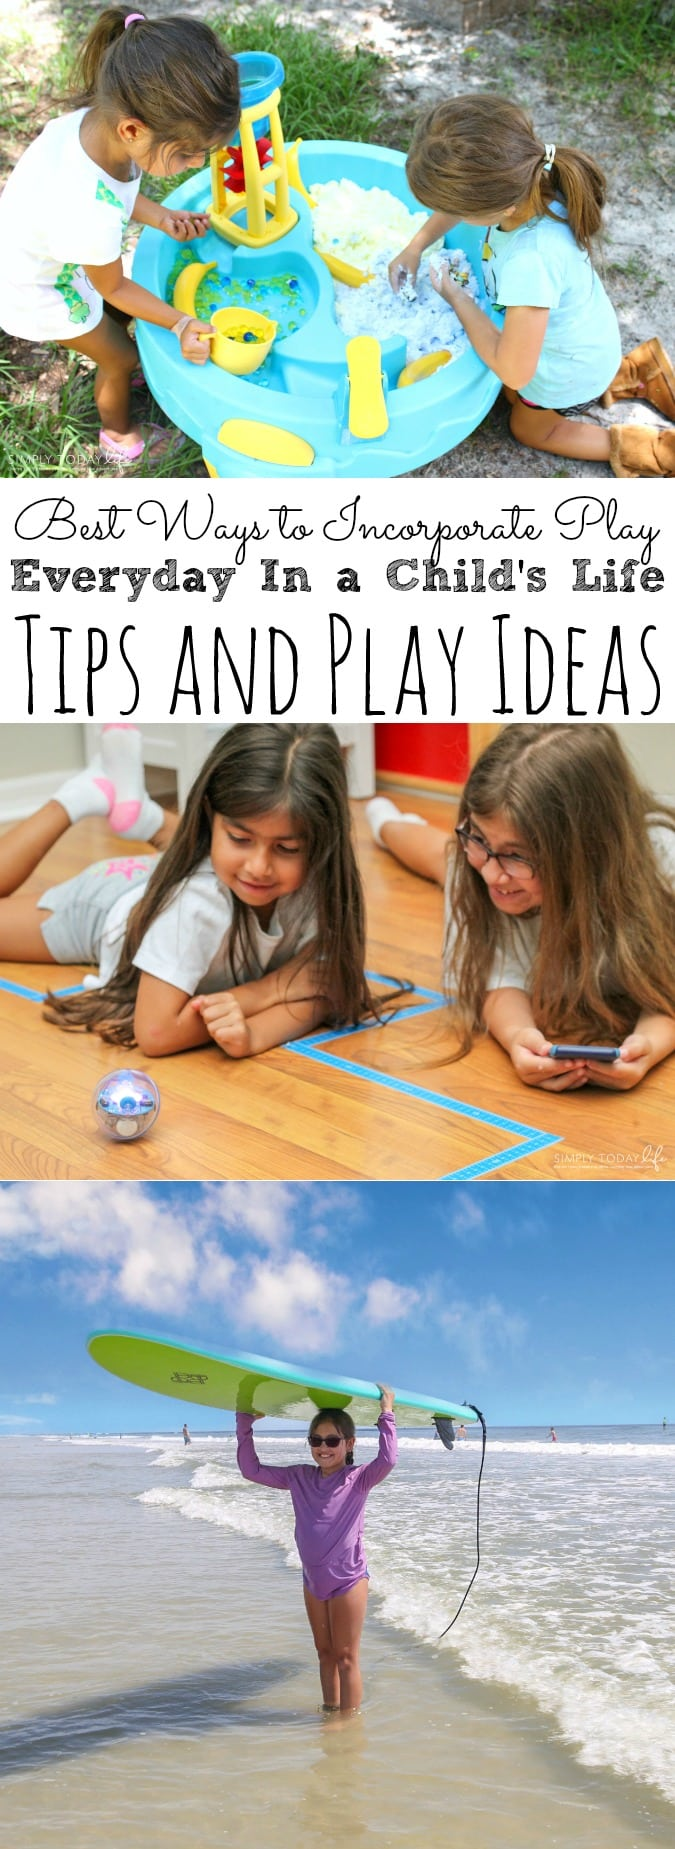 Best Ways To Incorporate Play Every Day In Your Child's Life | Tips and Play Ideas